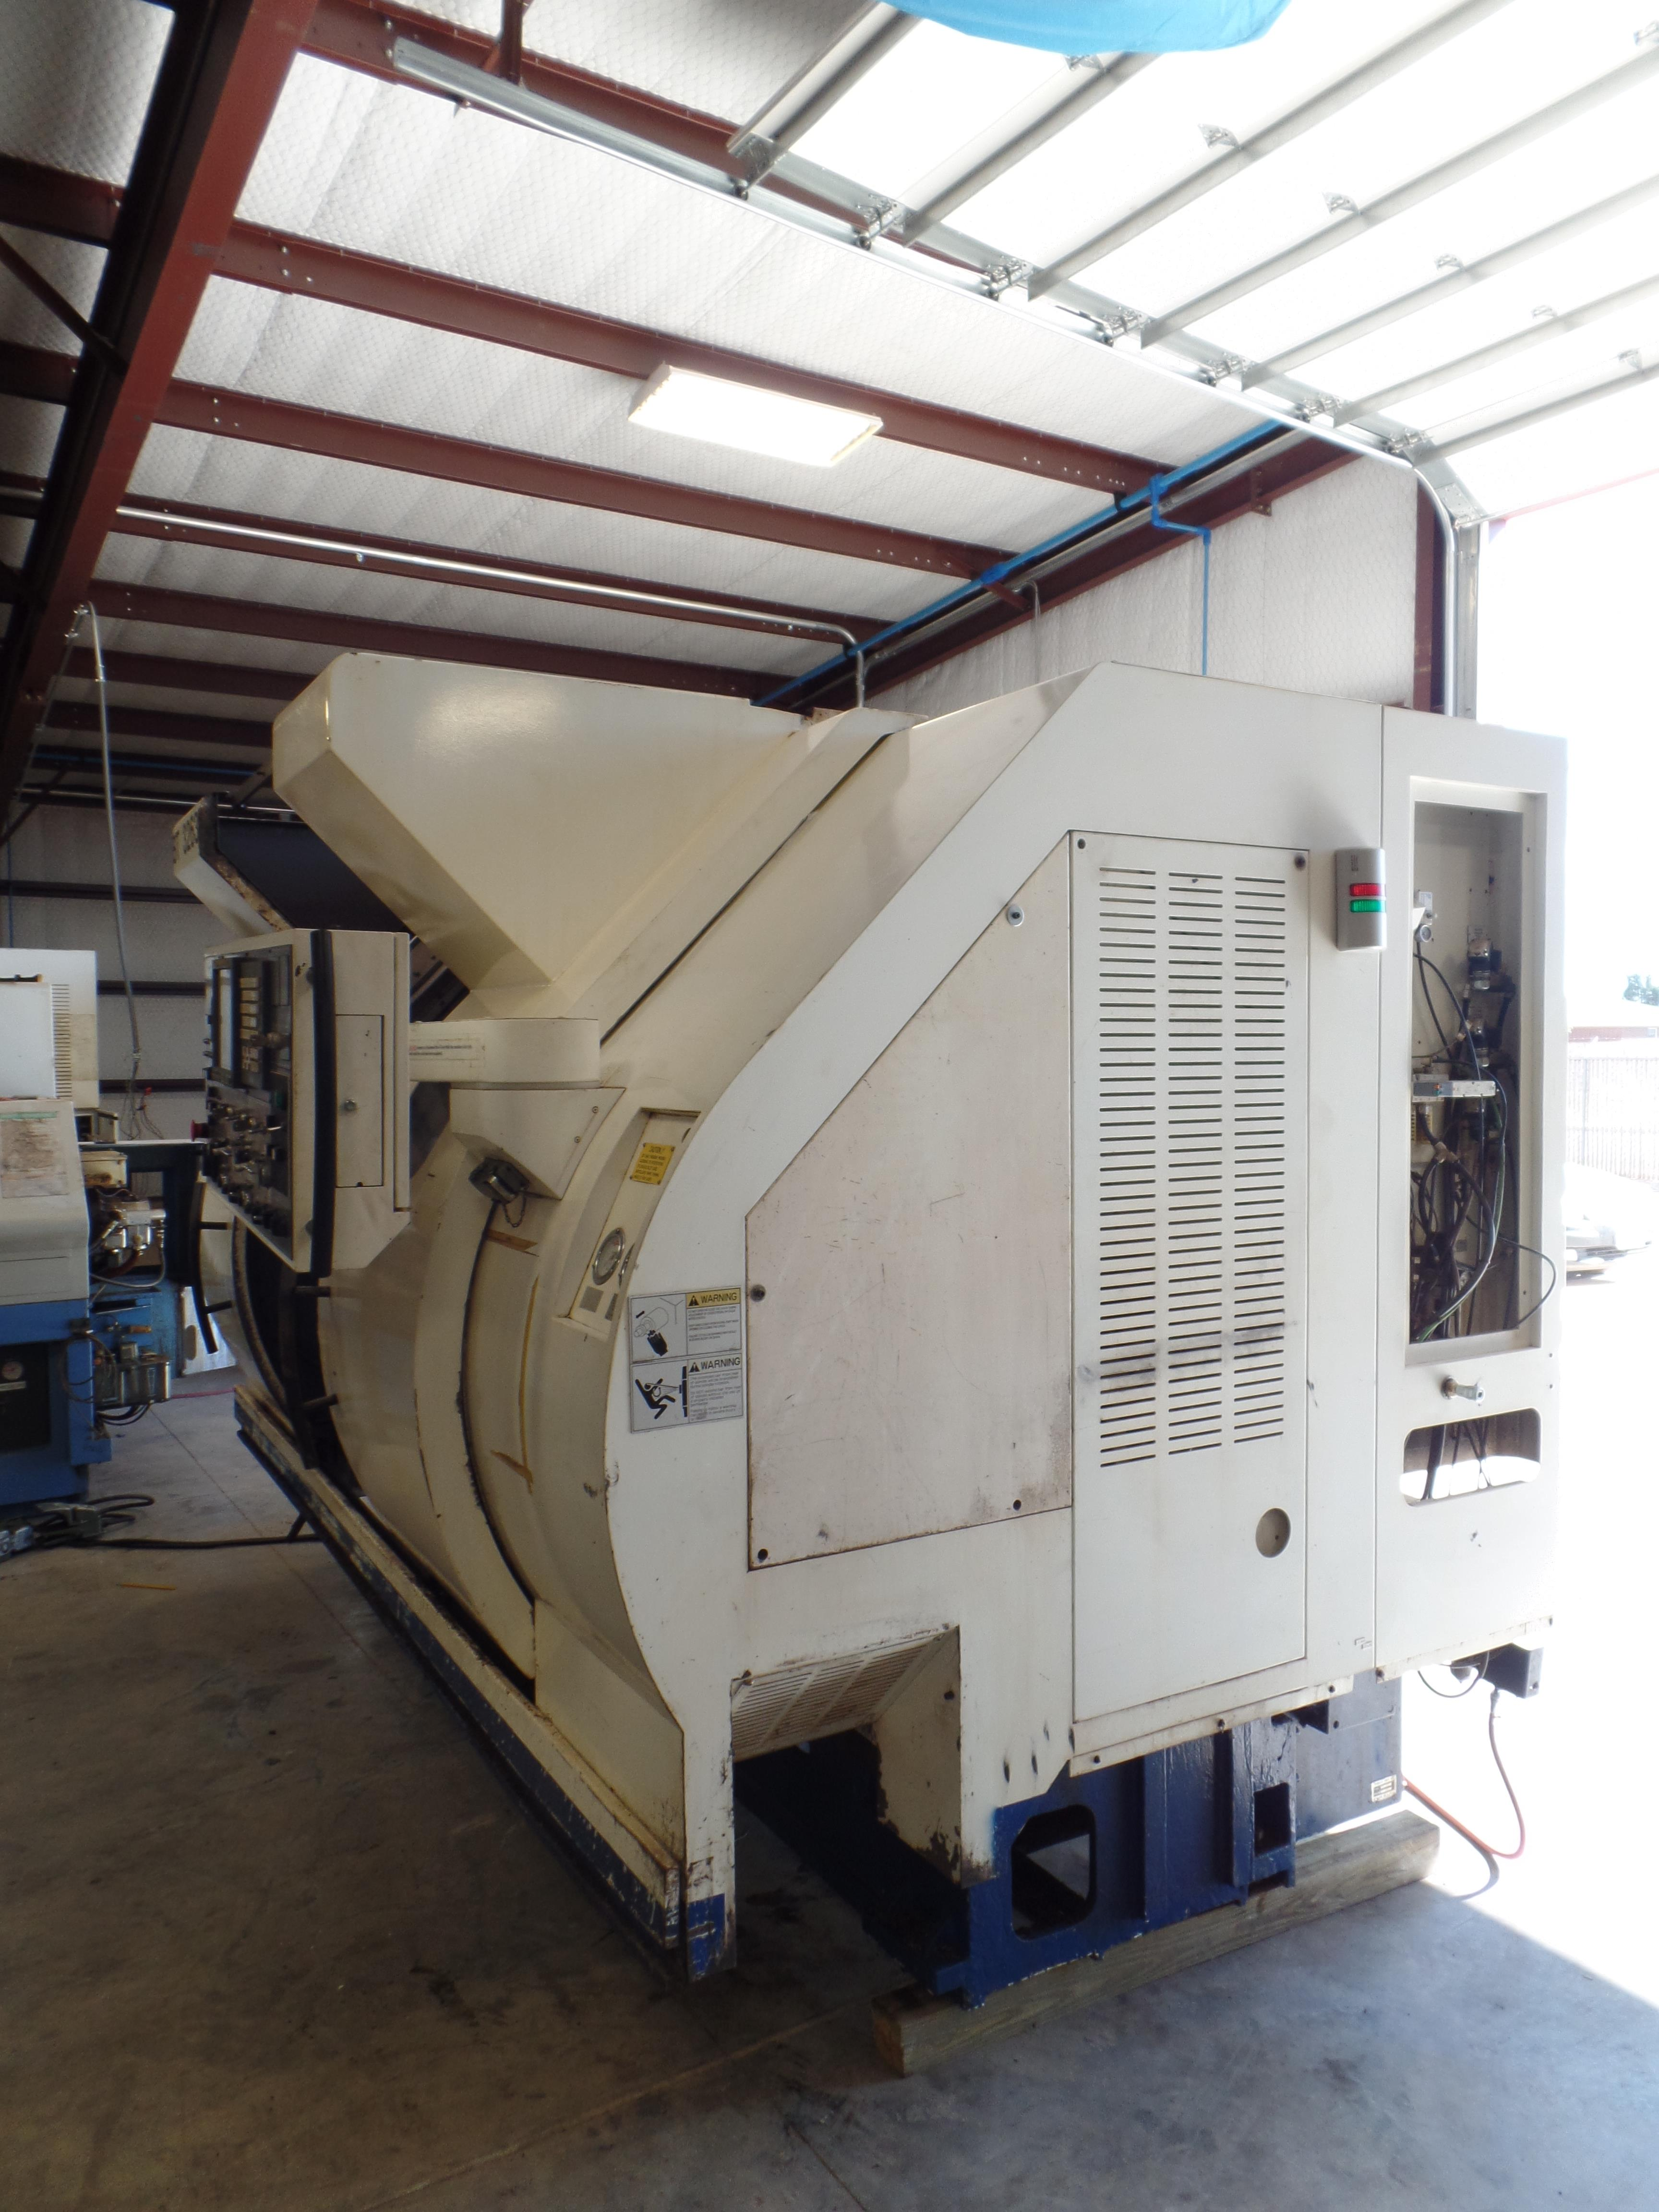 2005 Nakamura TW-20 Twin Spindle Twin Turret Opposed CNC Lathe, Fanuc 18iTB CNC control chip, side - Image 14 of 15